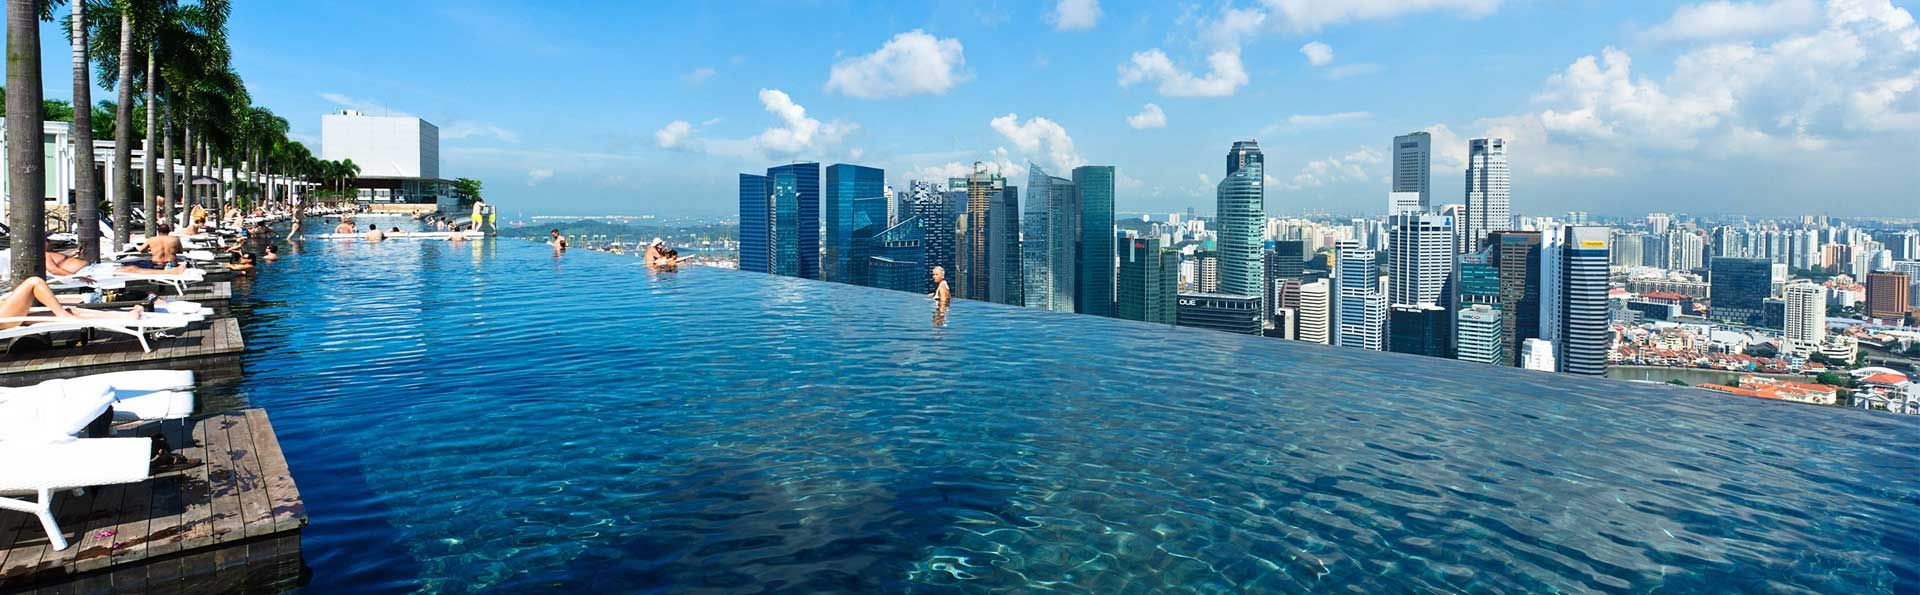 Marina Bay Sands Hotel Infinity Pool With View Of